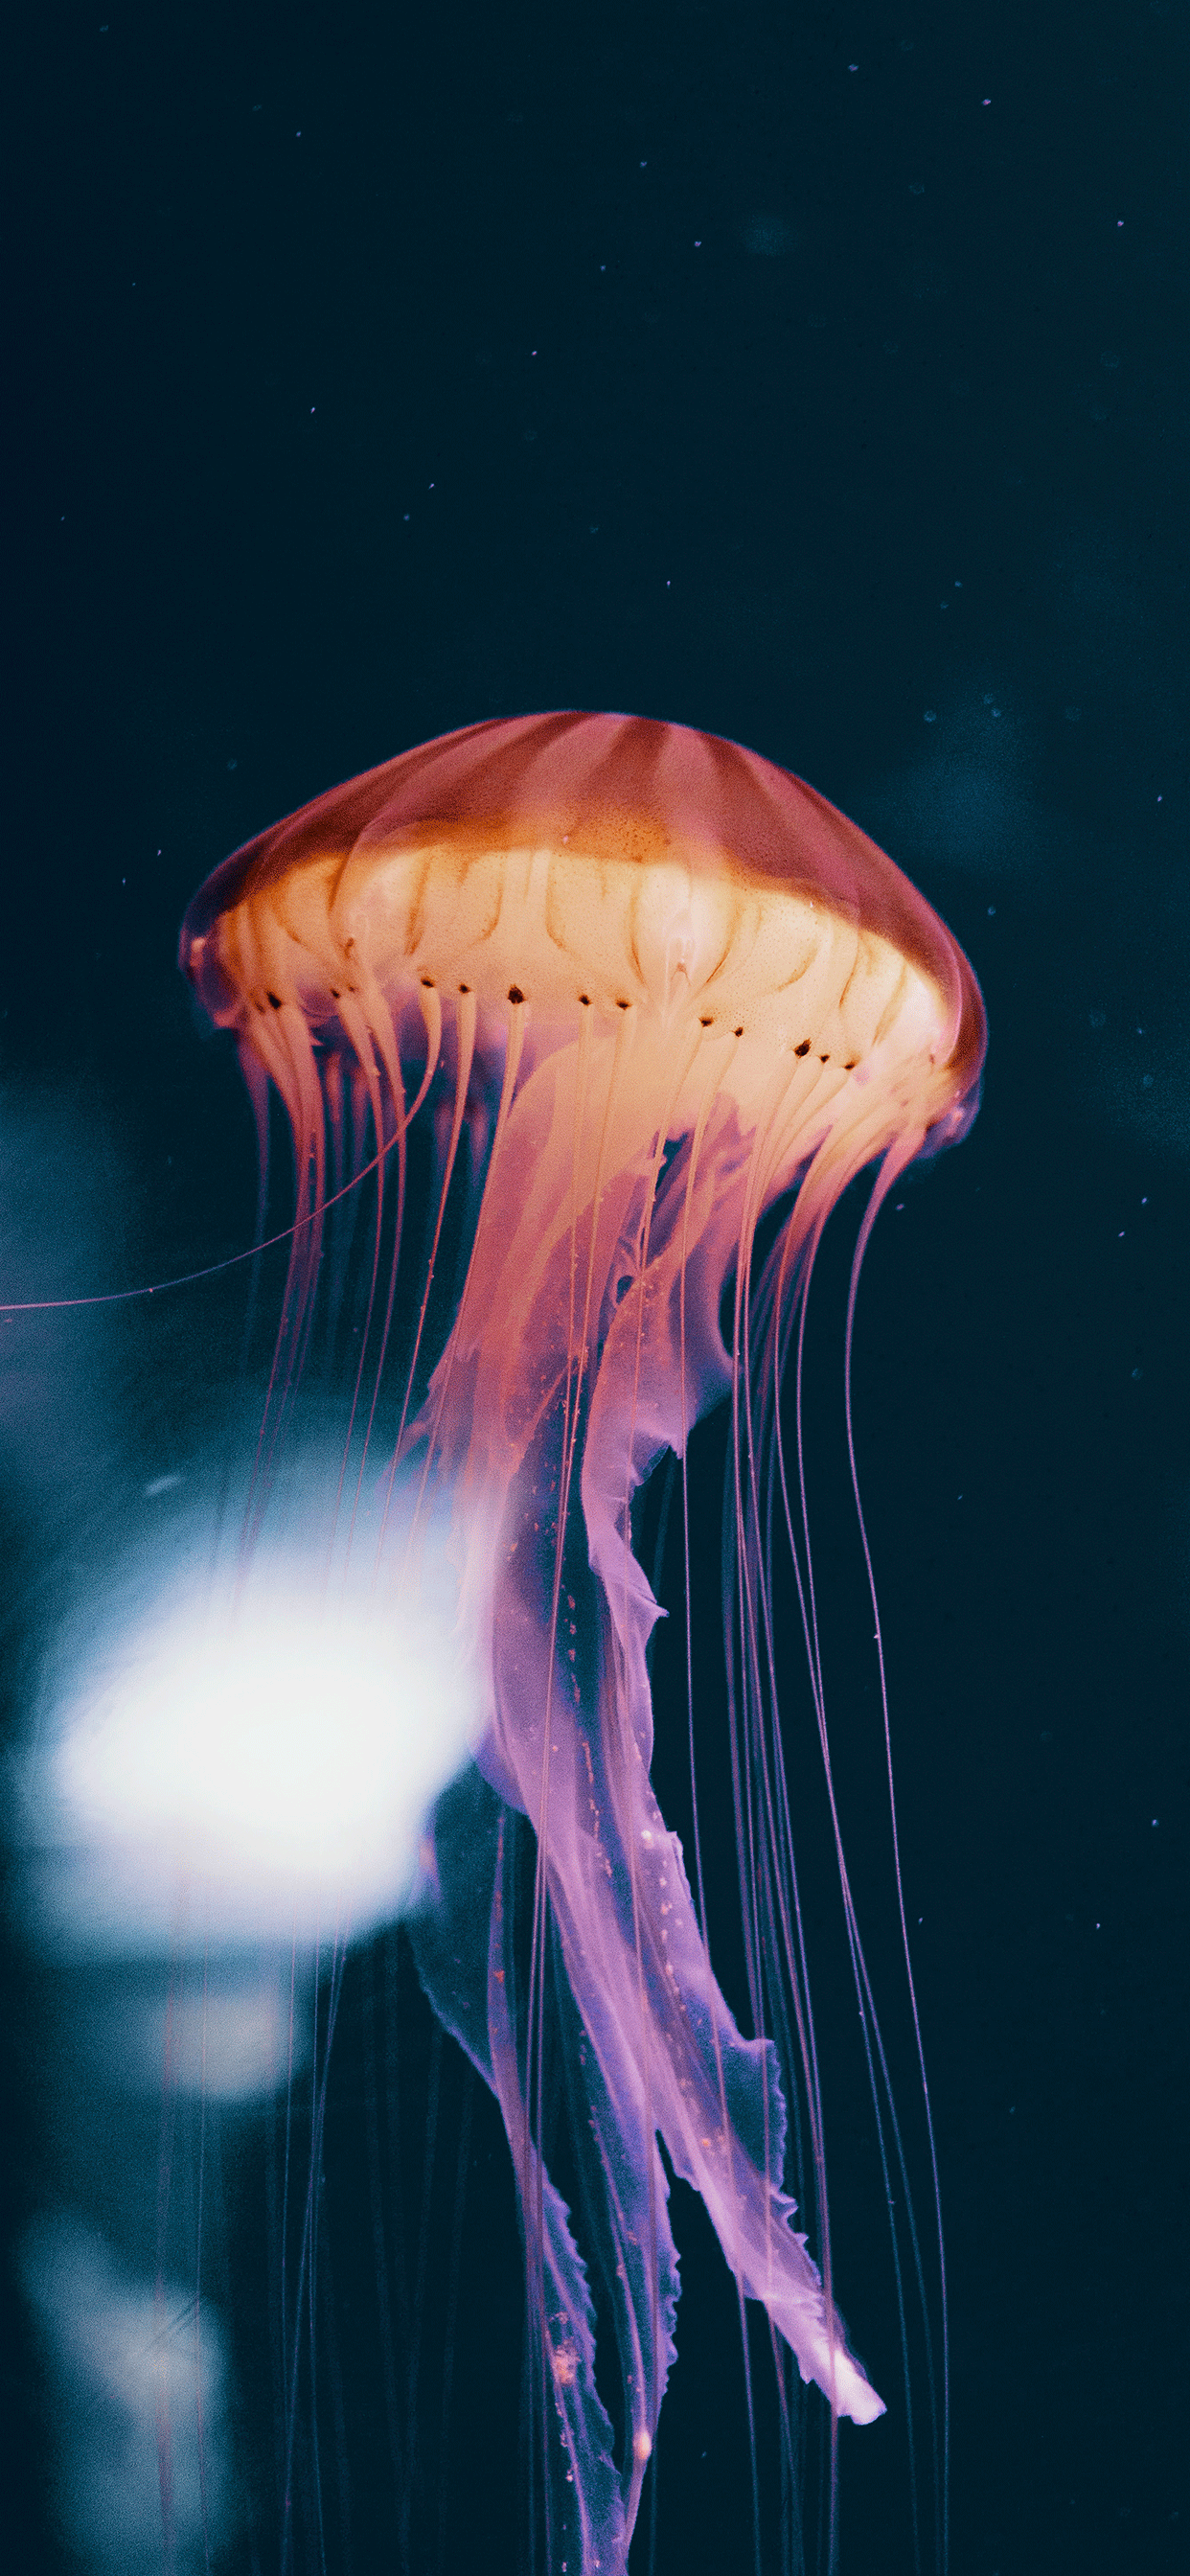 iPhone wallpapers jellyfish neon Fonds d'écran iPhone du 26/03/2019